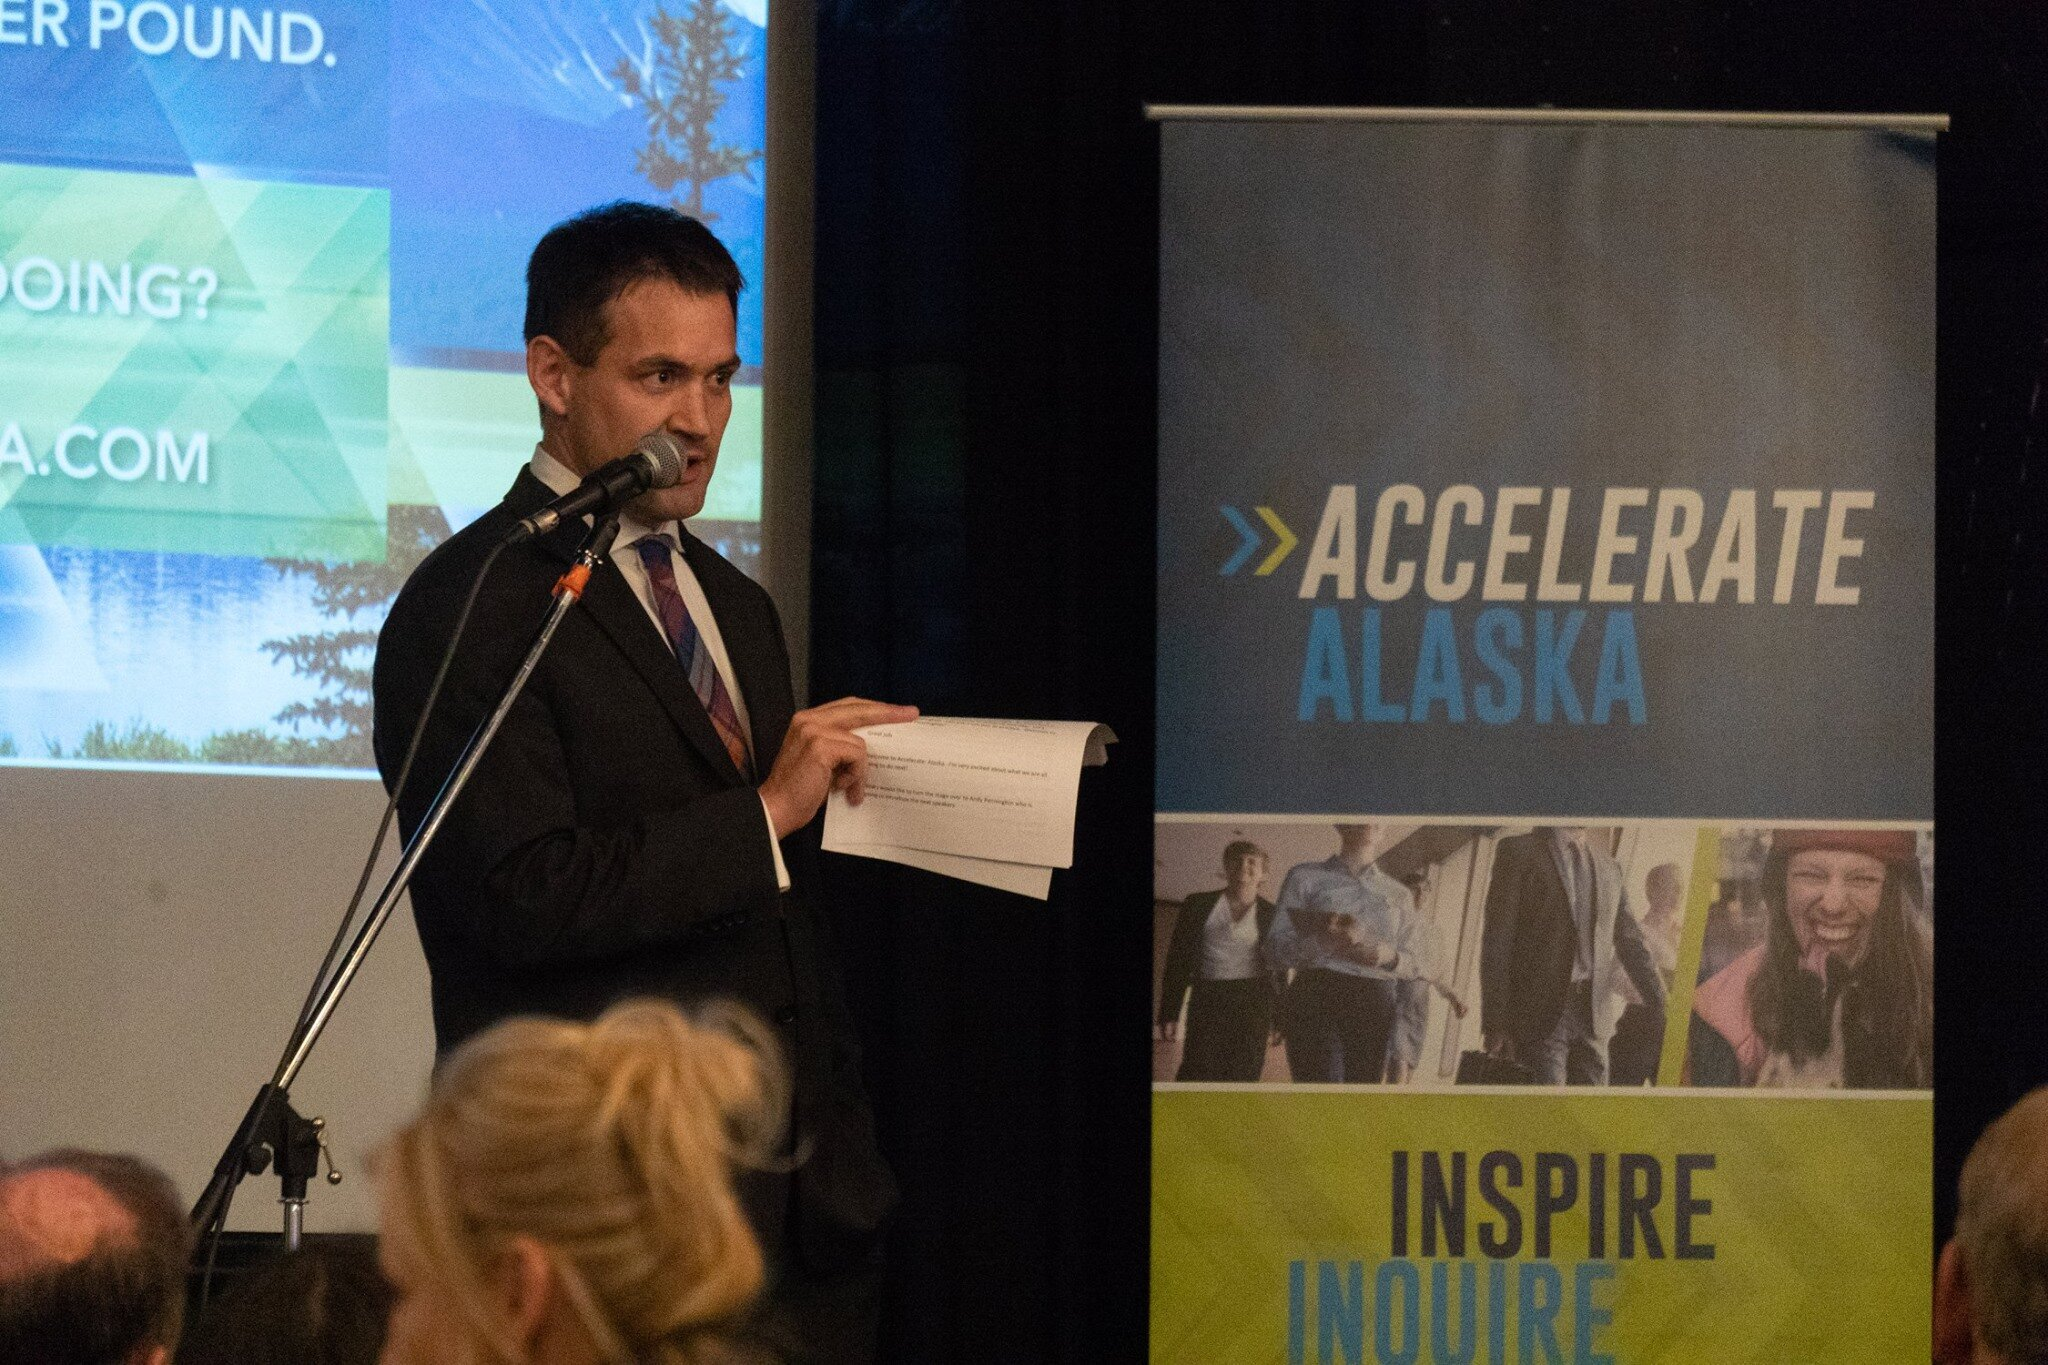 Ross Johnston, founder of Accelerate Alaska, speaking at last year's conference. (Photo courtesy of Accelerate Alaska).